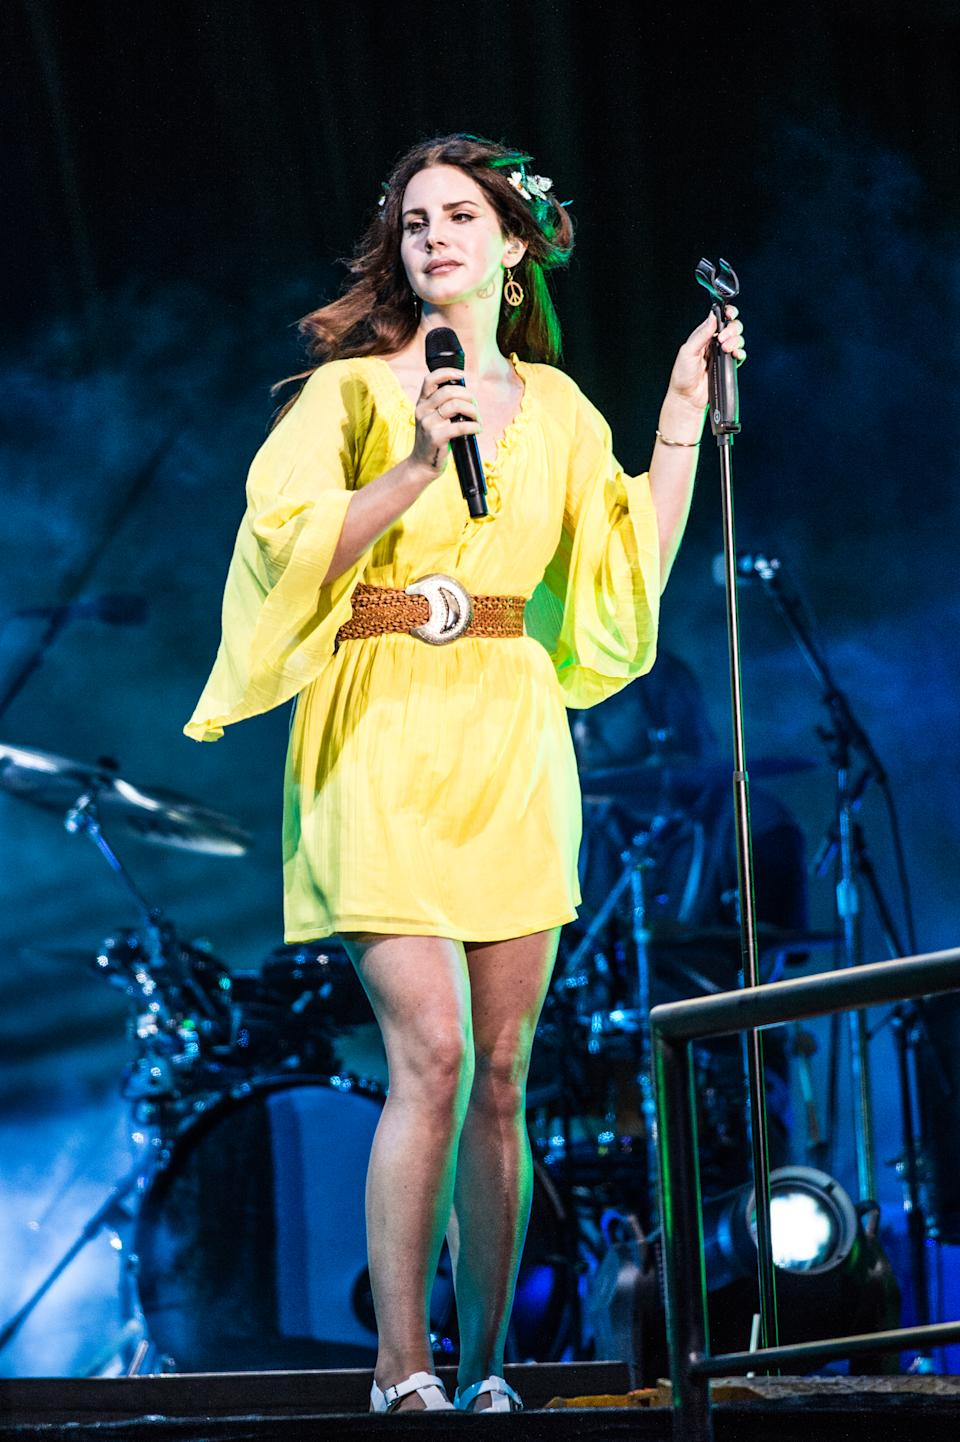 Lana Del Rey performs at 2016 Outside Lands Music Festival at Golden Gate Park on Sunday, Aug. 7, 2016, in San Francisco, Calif. (Photo by Amy Harris/Invision/AP)